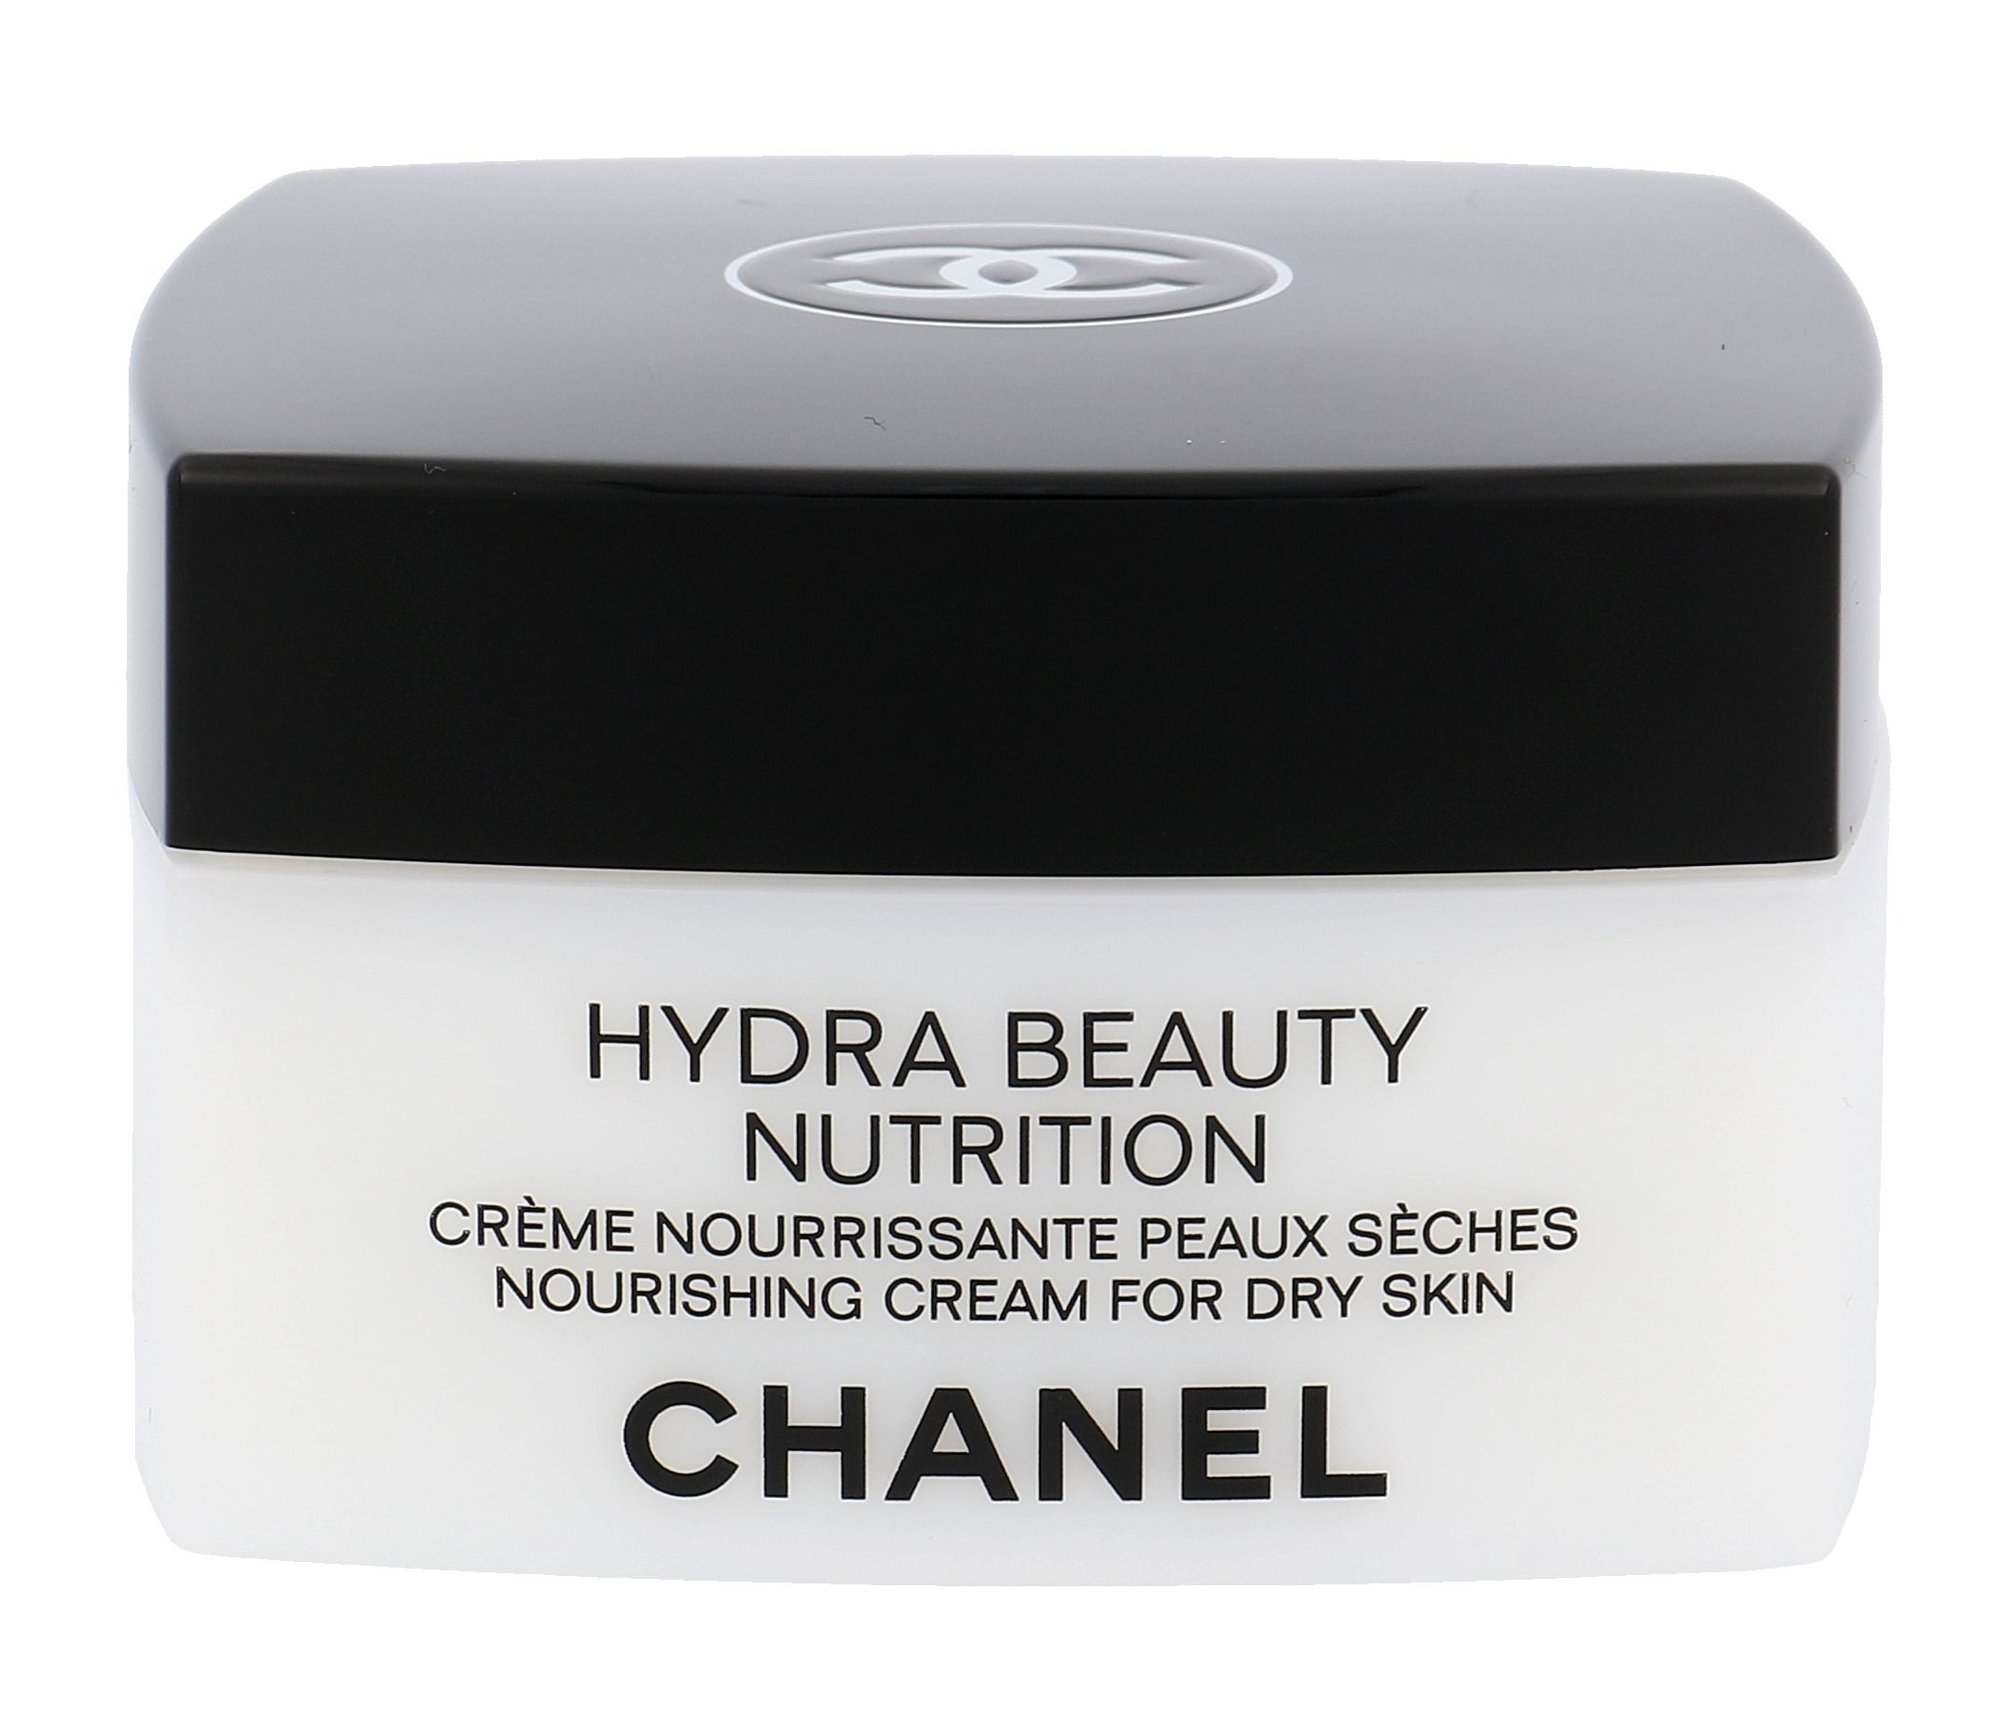 Chanel Hydra Beauty Nutrition Day Cream 50ml